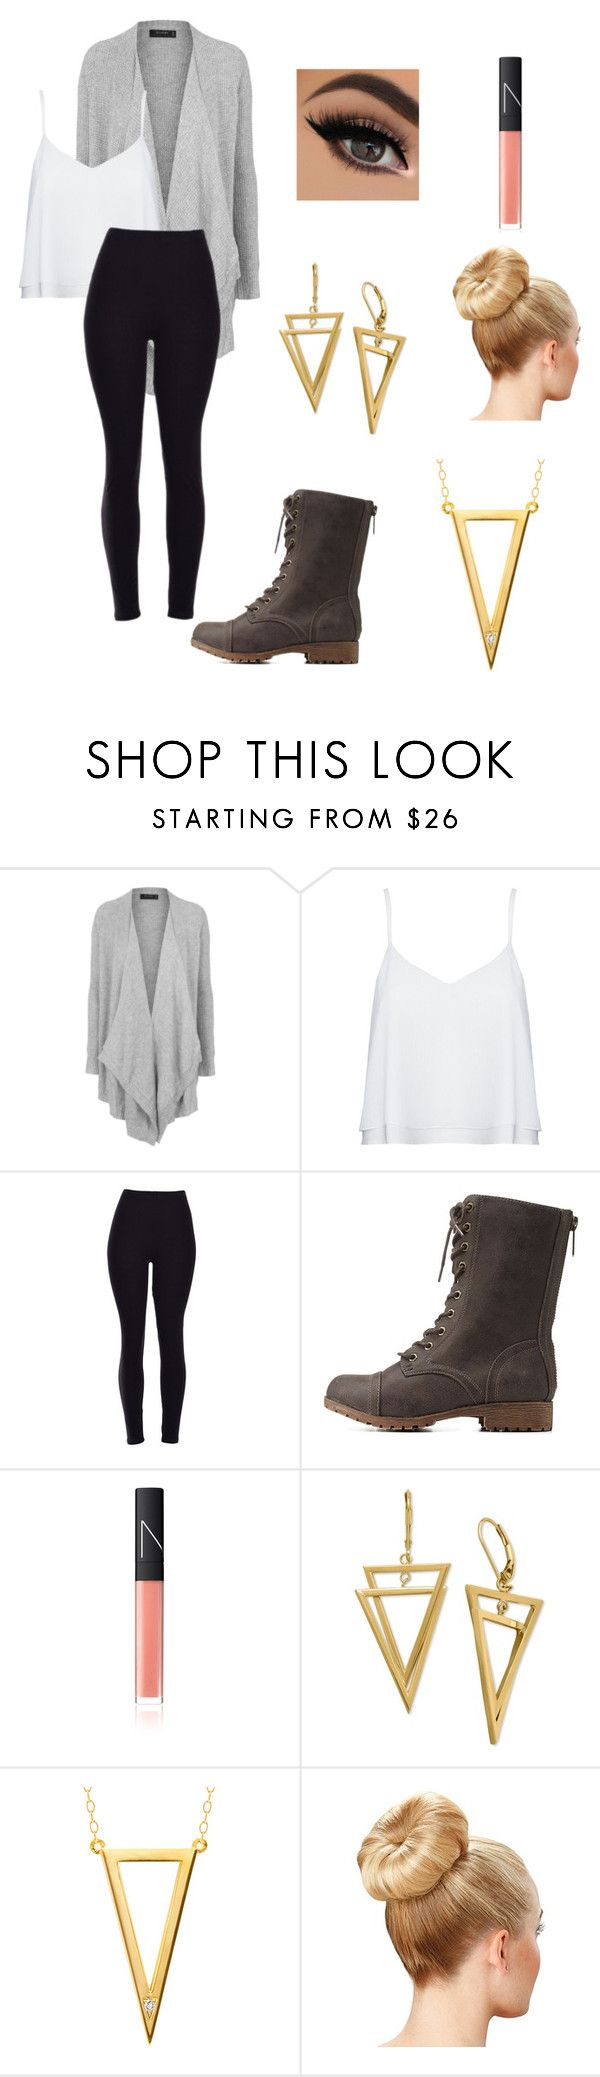 """Untitled #53"" by paigevjacobs on Polyvore featuring Topshop, Alice + Olivia, Charlotte Russe, NARS Cosmetics, Ella Poe, women's clothing, women, female, woman and misses"